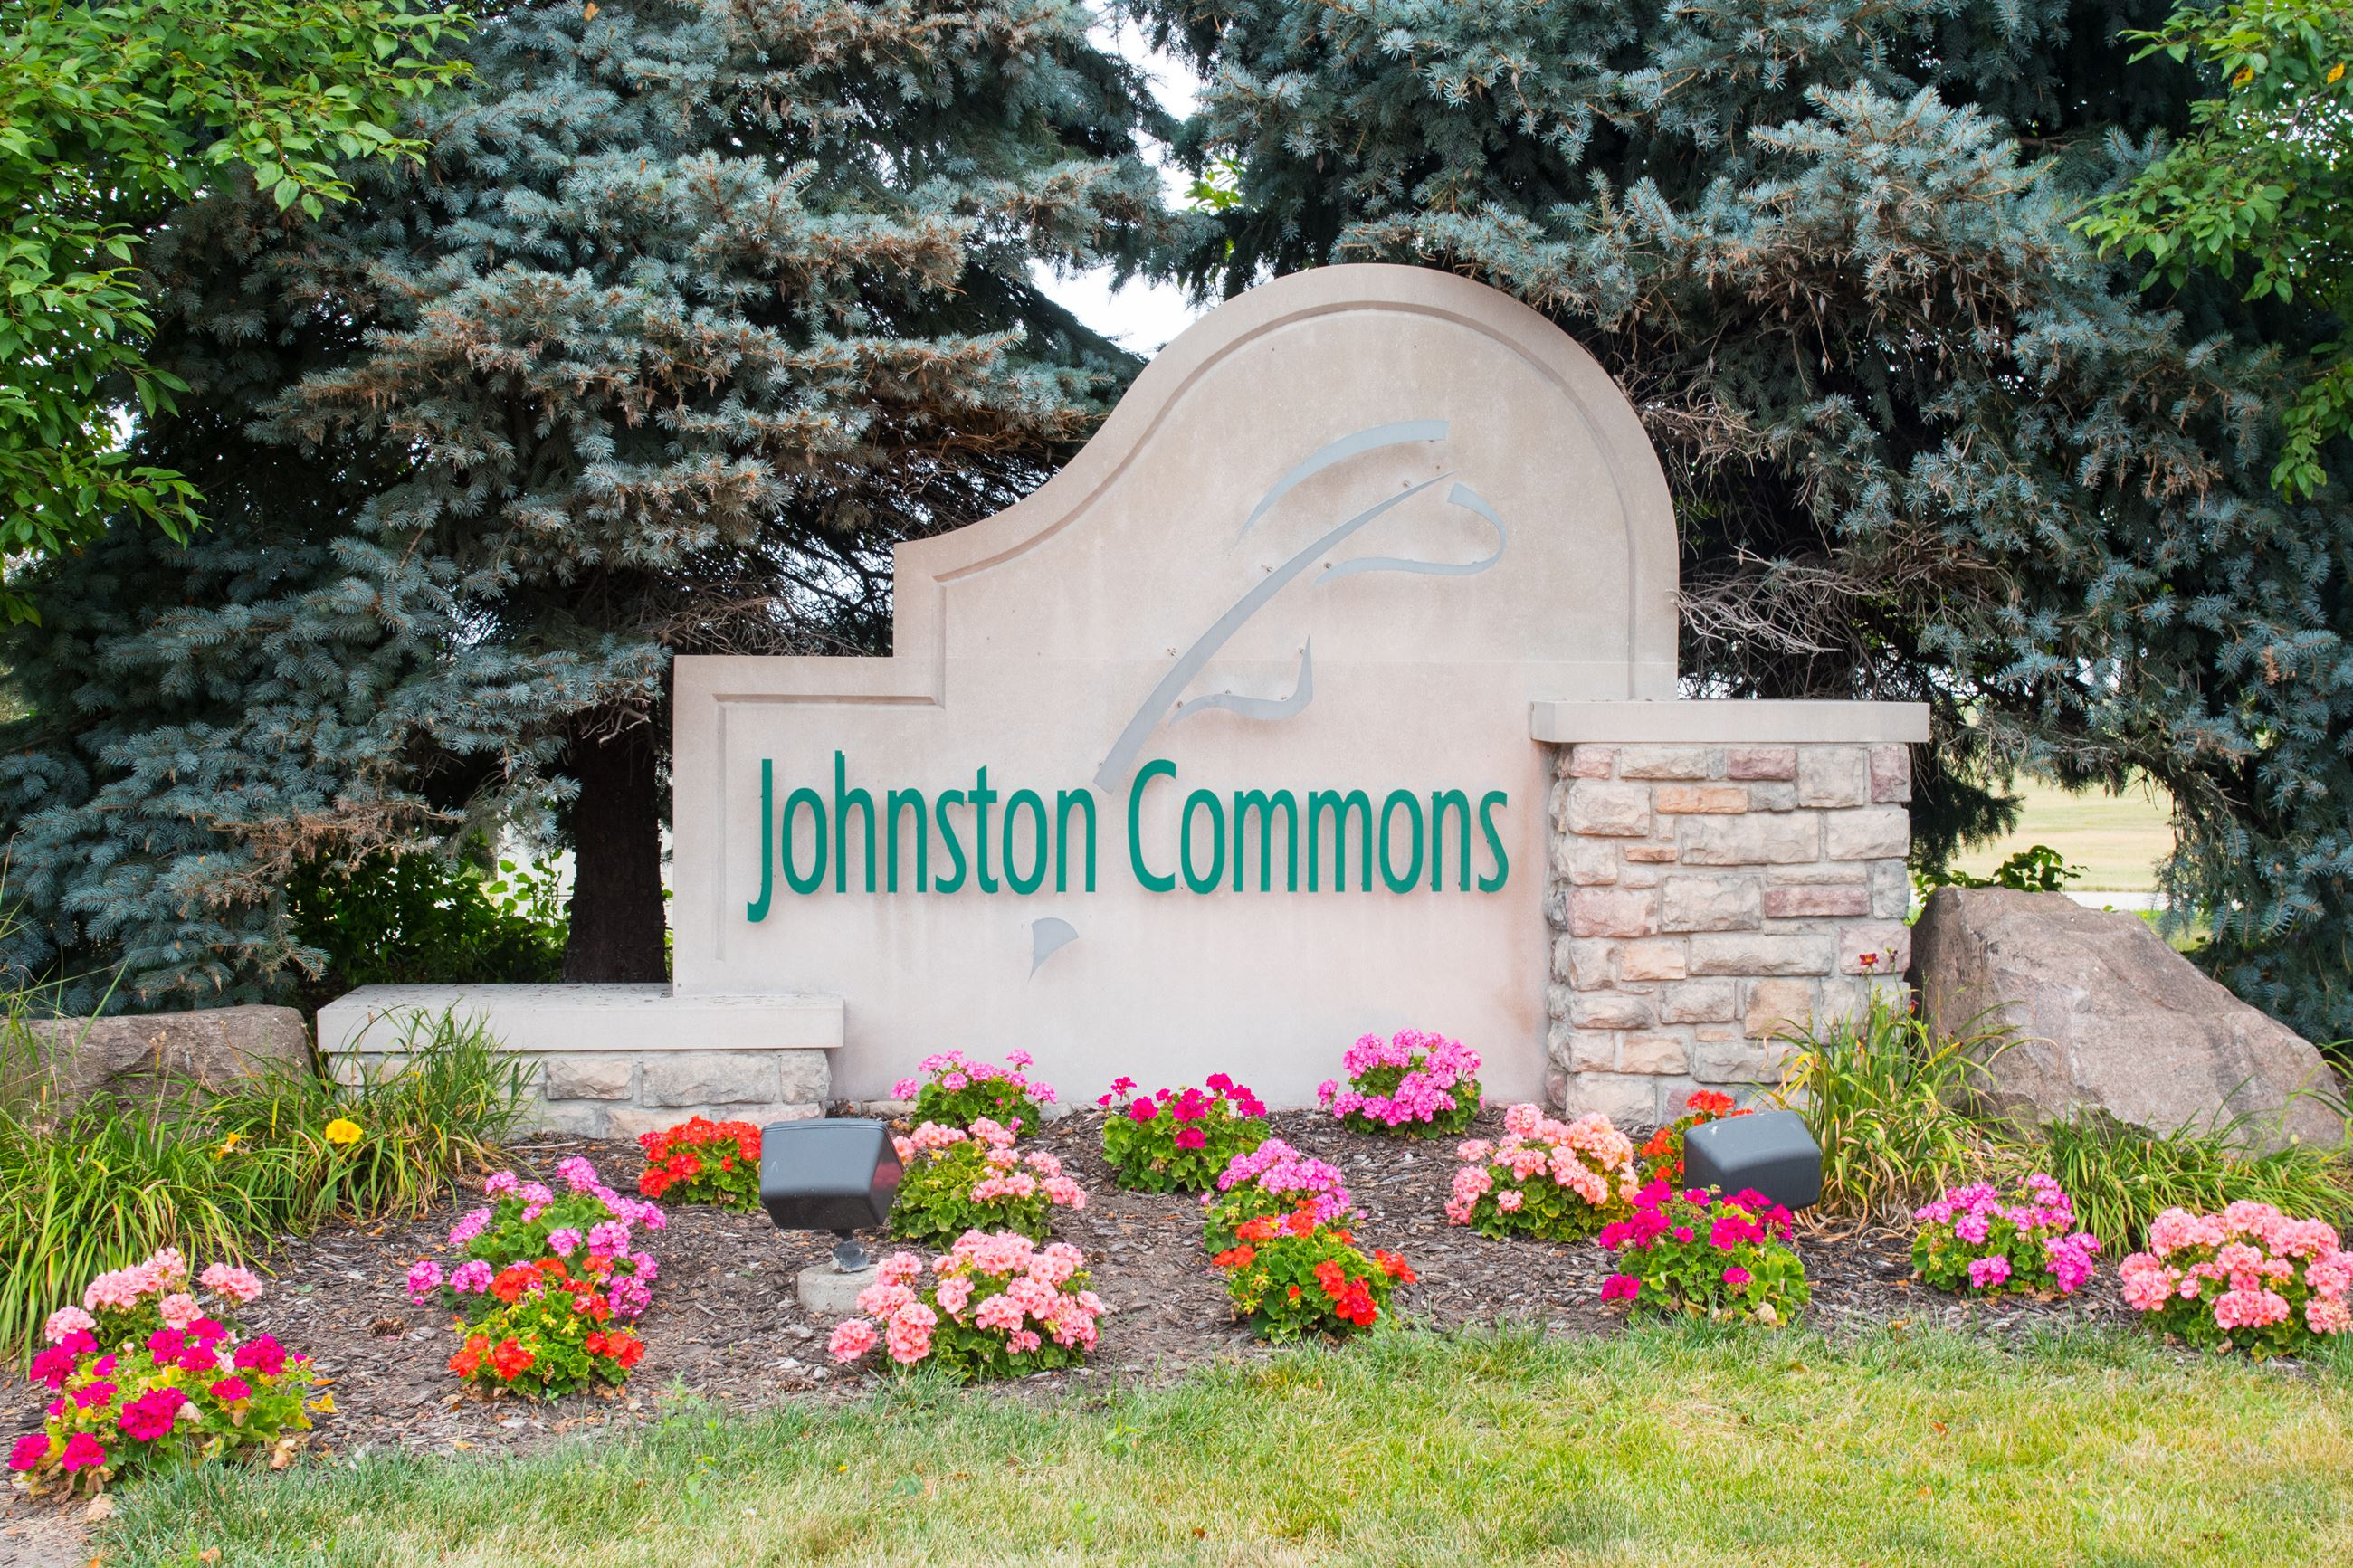 Johnston Commons